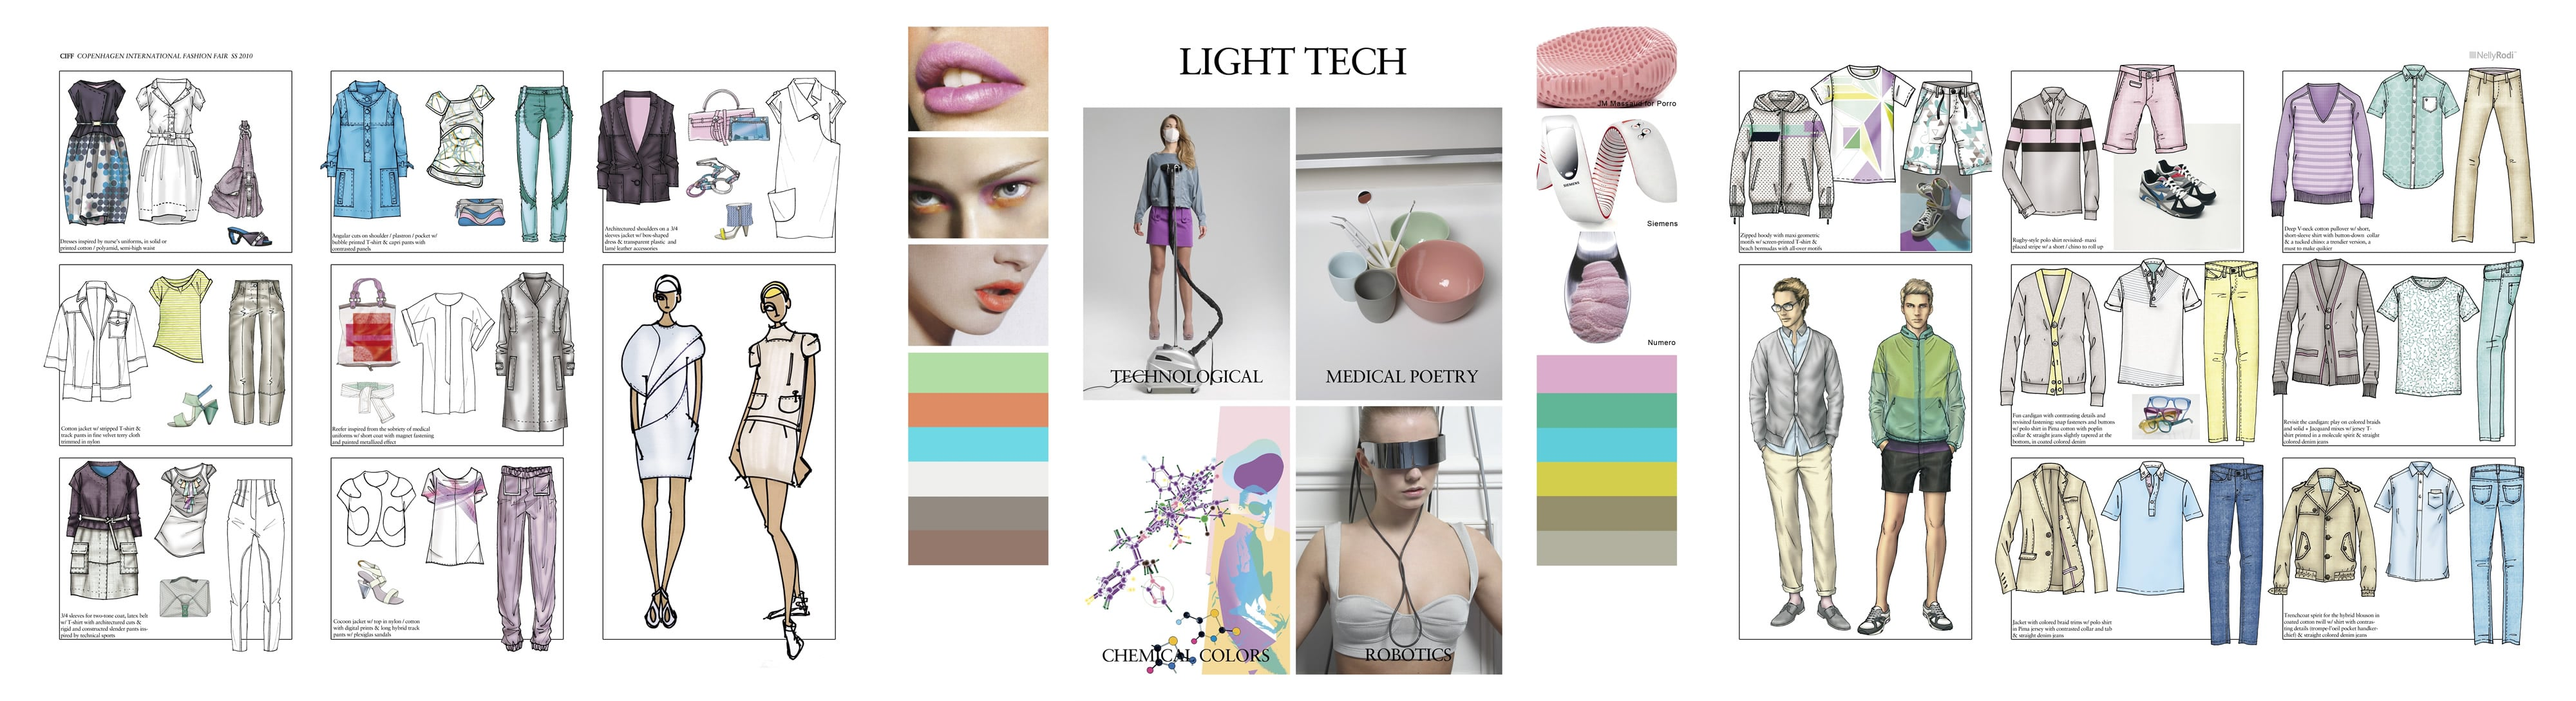 Fashion Trend for 2010 : Techie Light